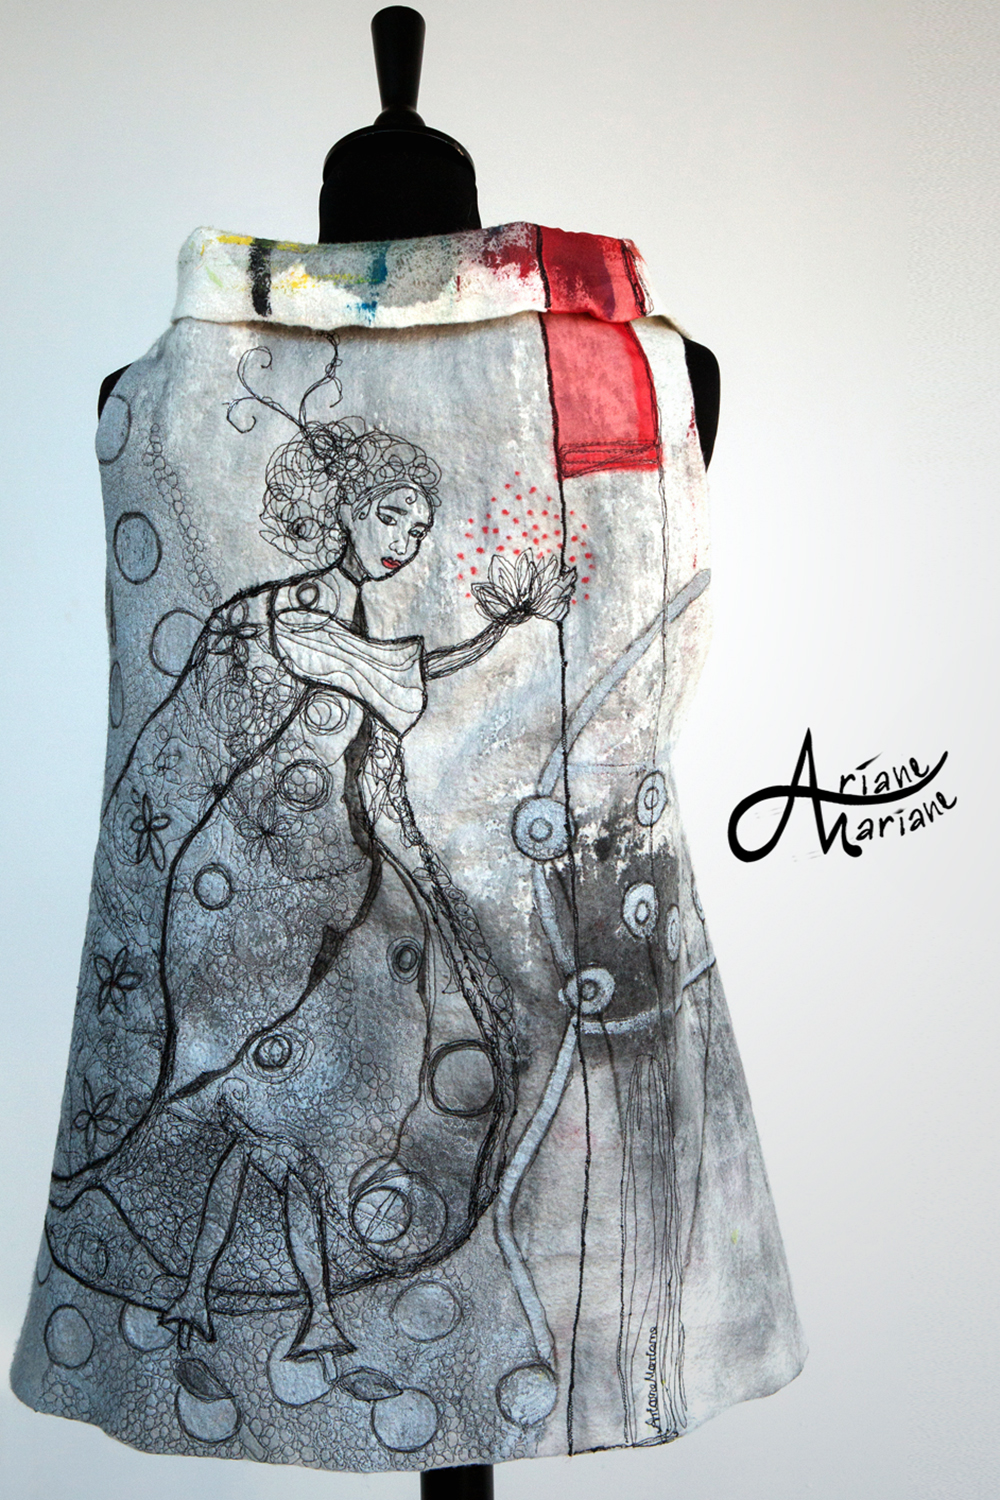 Same art vest shown from the other side. But please don't call it art ;)!